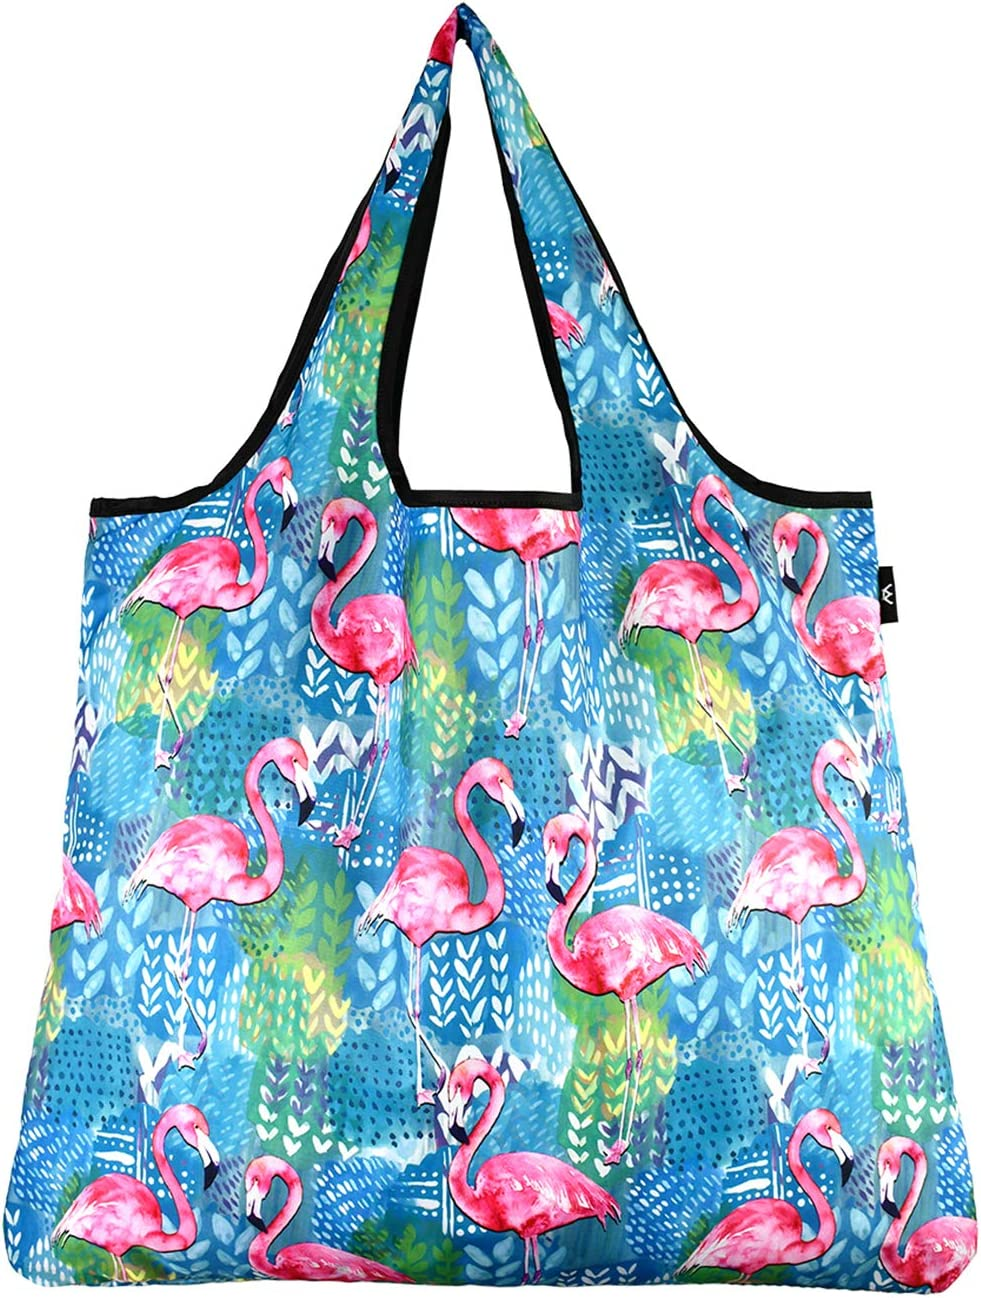 30 x 34cm  12 x 13in brunch or library bag shopping perfect for life on the go meetings Japanese knot bag in Flamingo design fabric